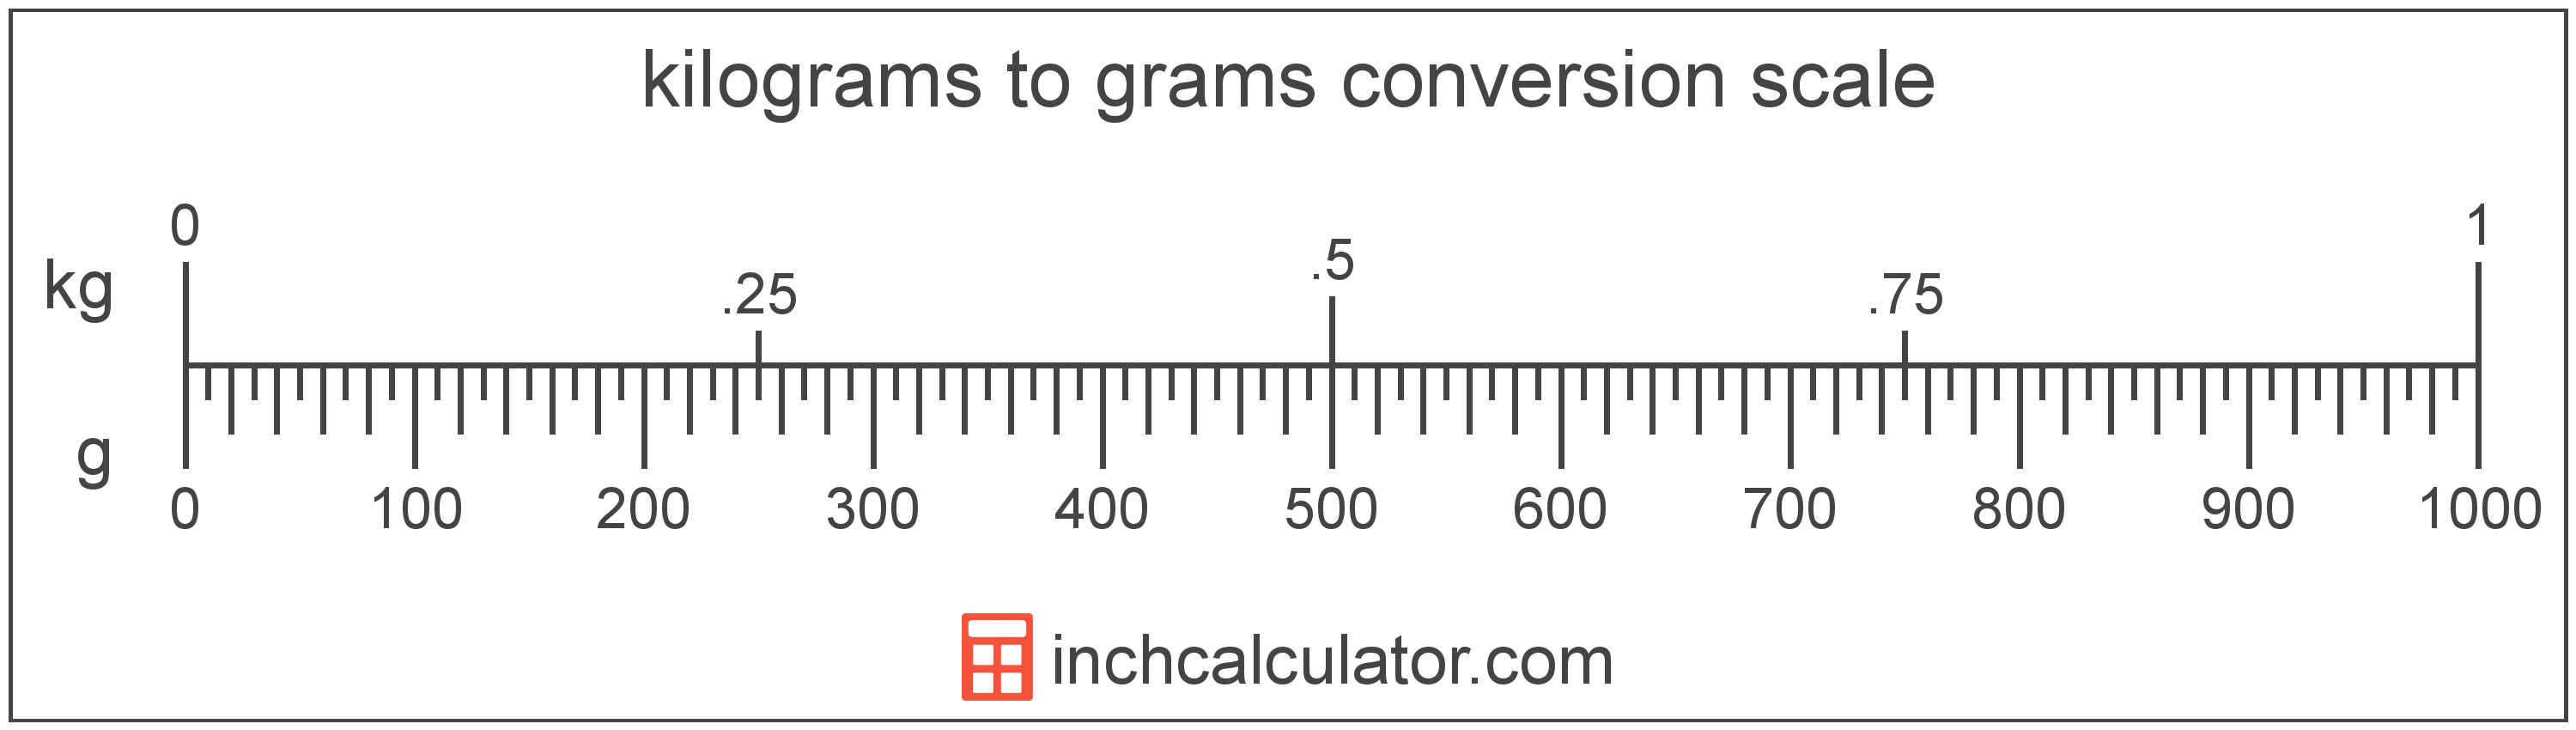 conversion scale showing kilograms and equivalent grams weight values